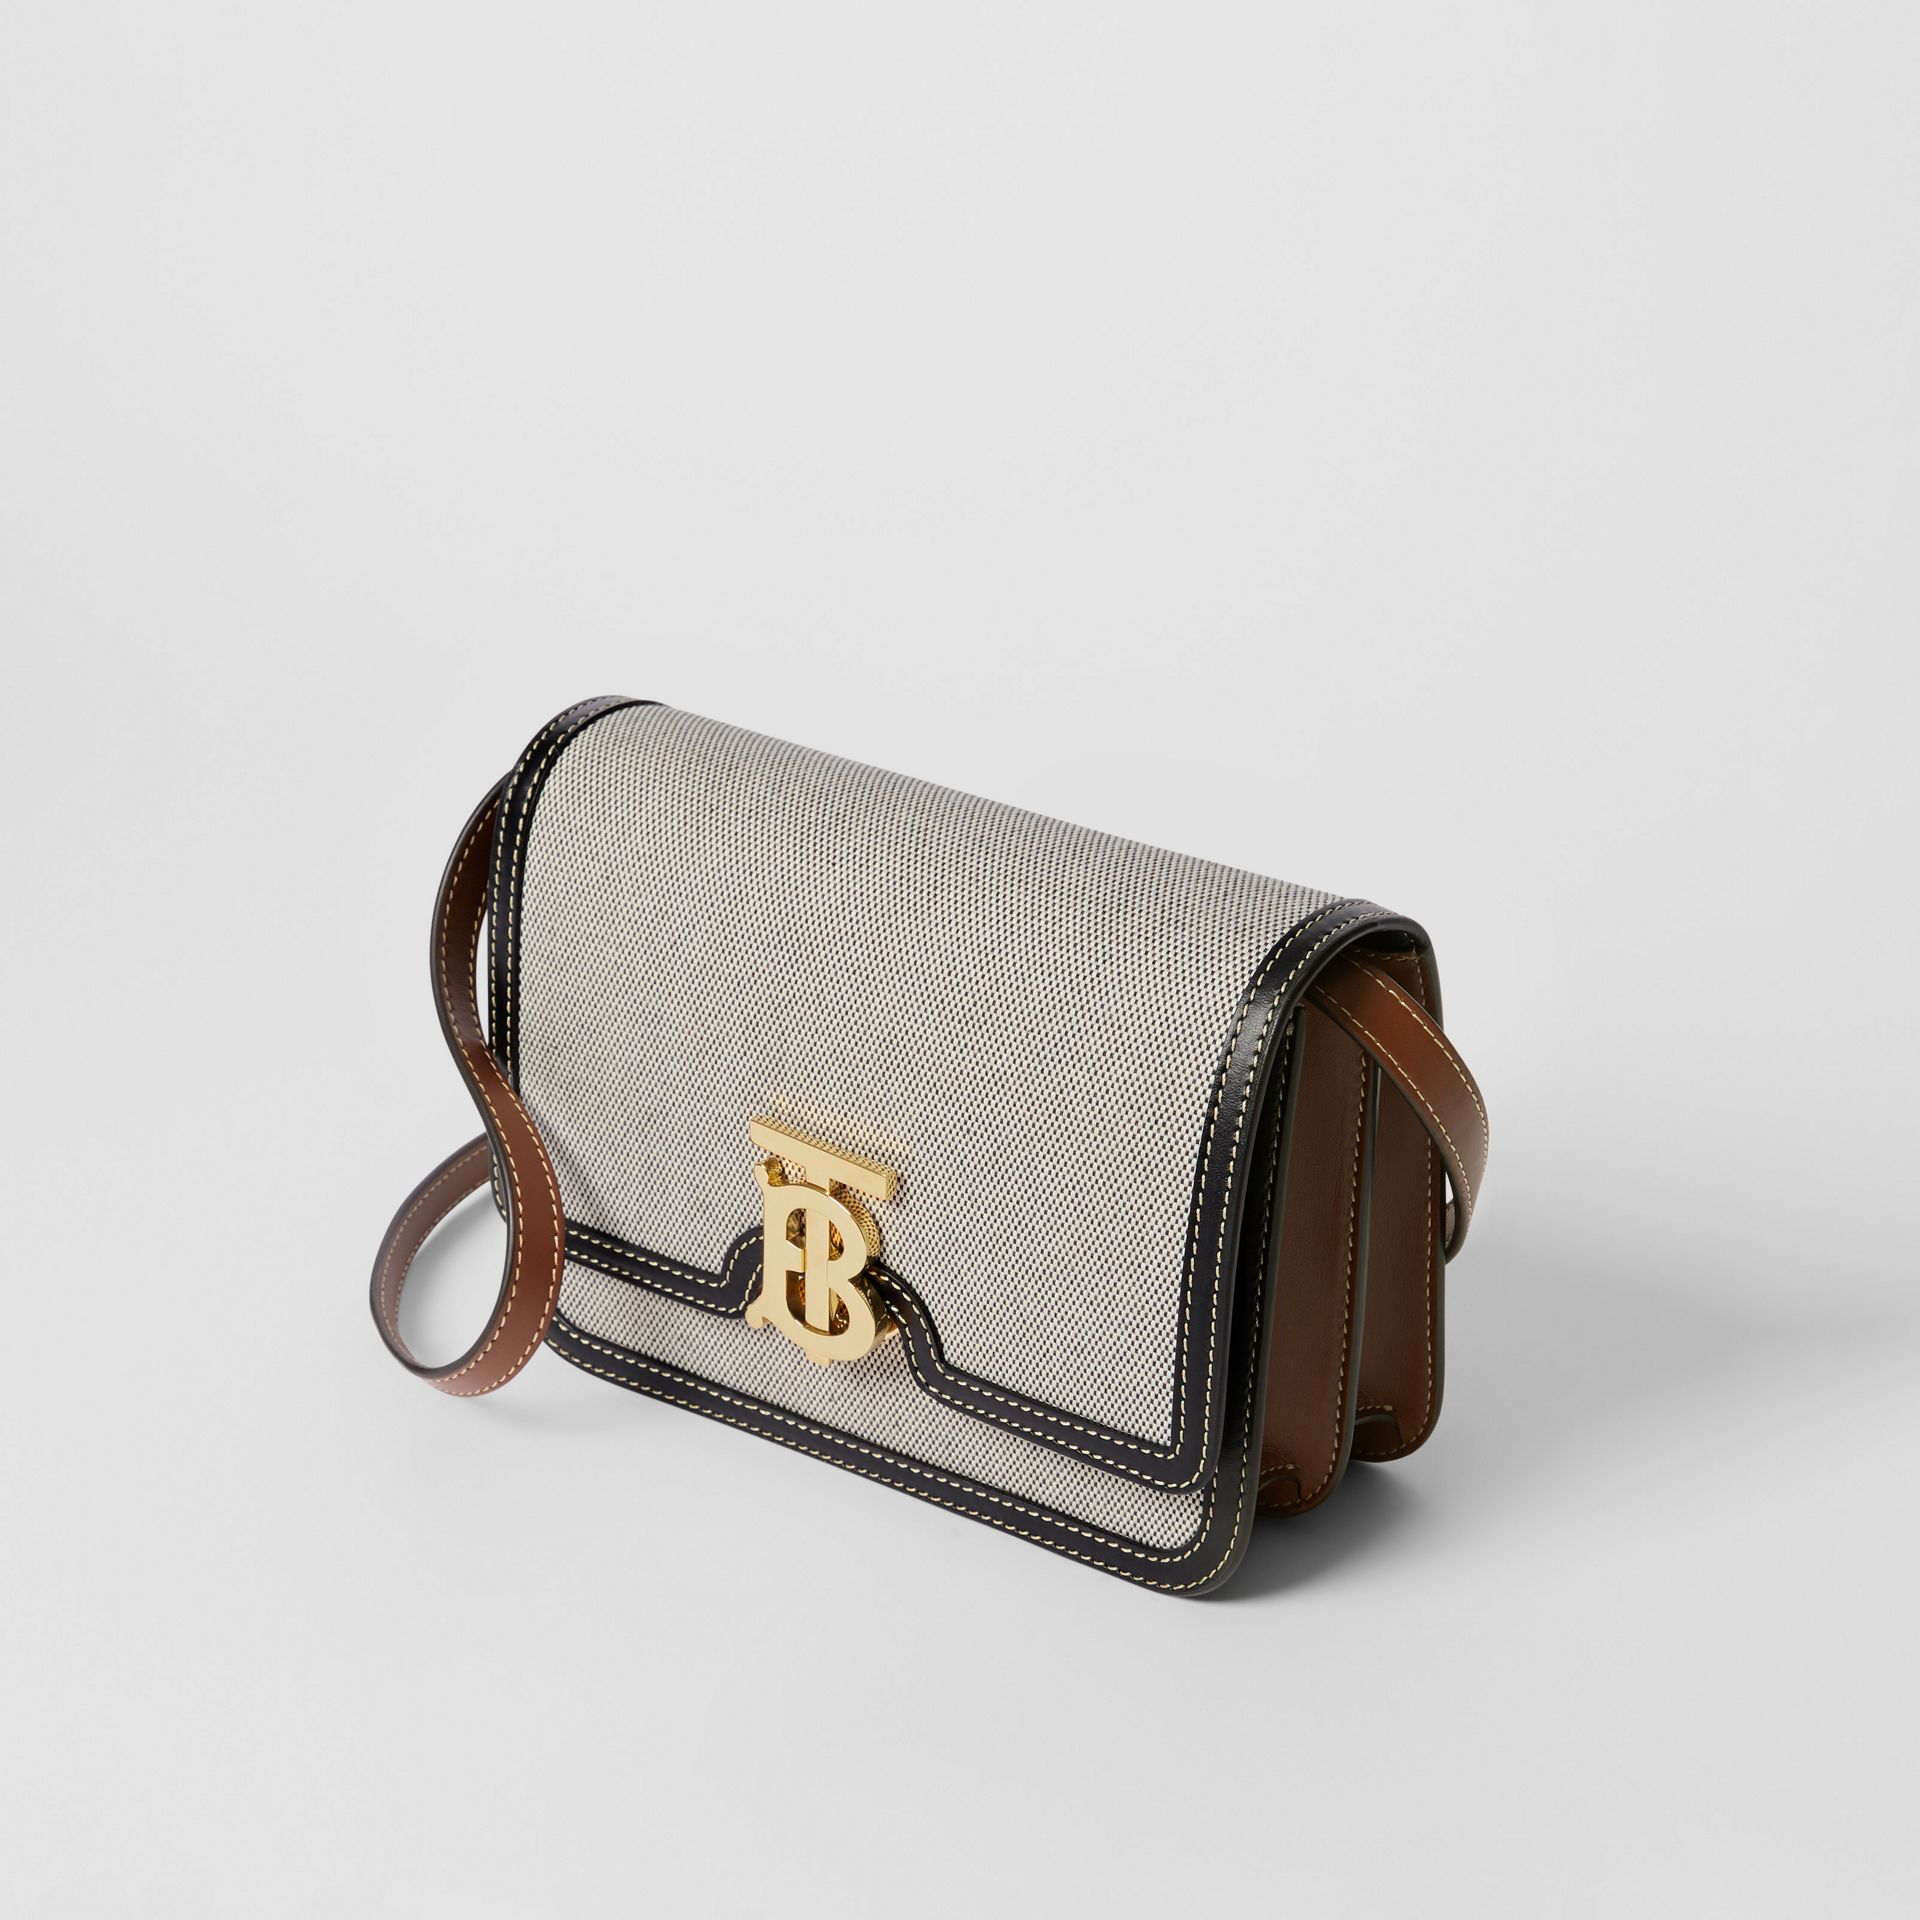 Small Tri-tone Canvas and Leather TB Bag in Black/tan - Women | Burberry United States - gallery image 3